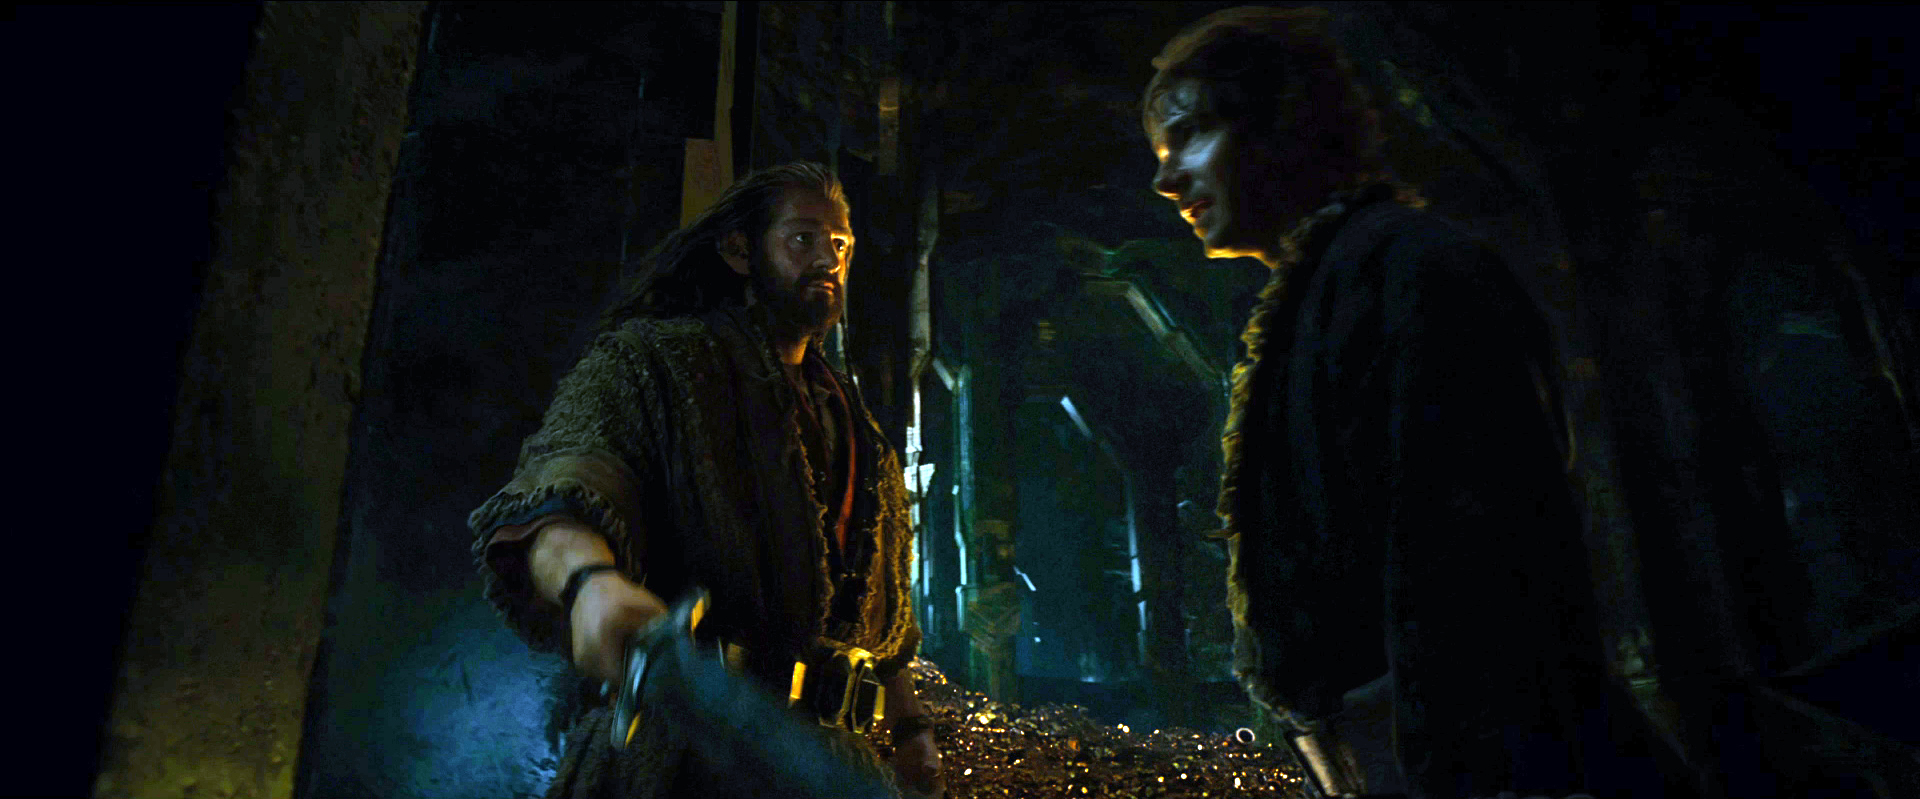 LOTRProject's Emil Johansson: it is no longer Tolkien's Middle-earth | Hobbit Movie News and Rumors | TheOneRing.net™